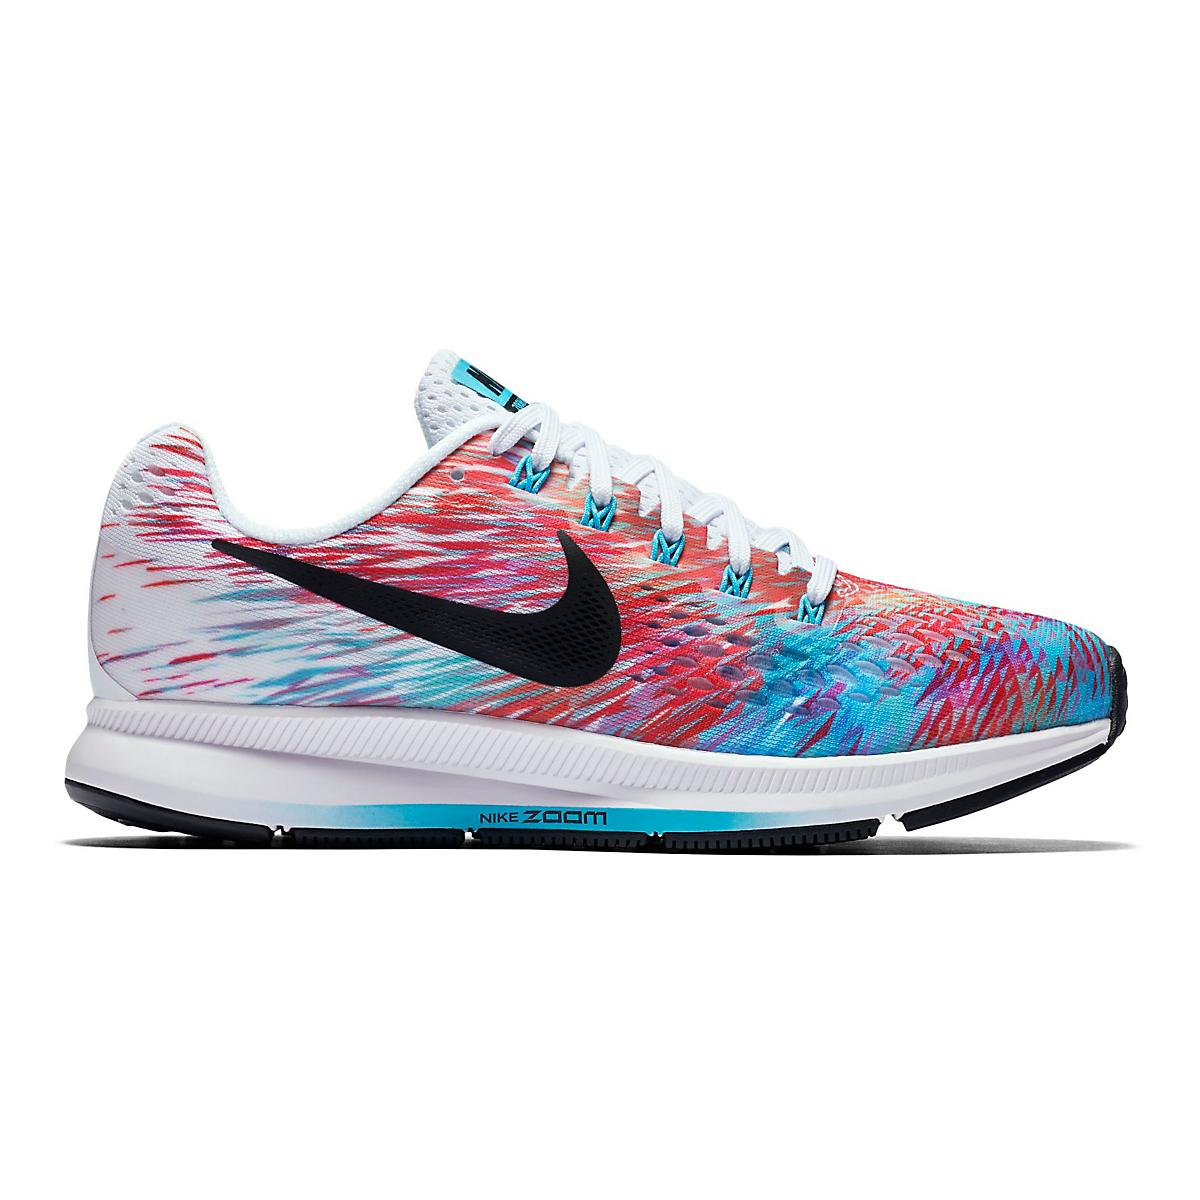 Womens Nike Air Zoom Pegasus 34 LE Running Shoe at Road Runner Sports 36355aea0acb2